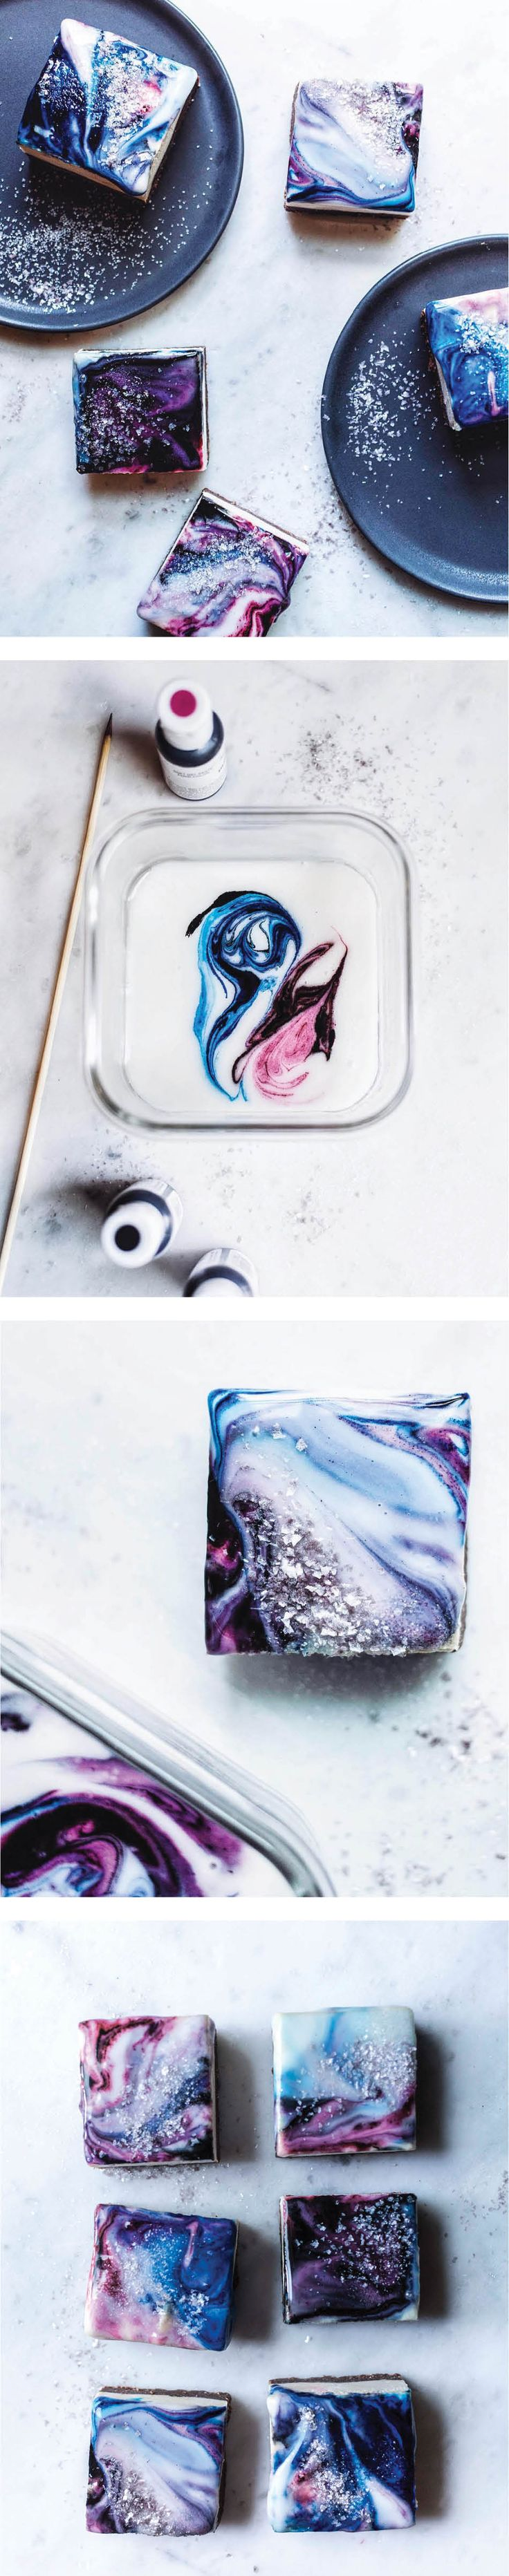 Marbled Icing DIY. Swirl colors into white icing with a skewer and then dip your…